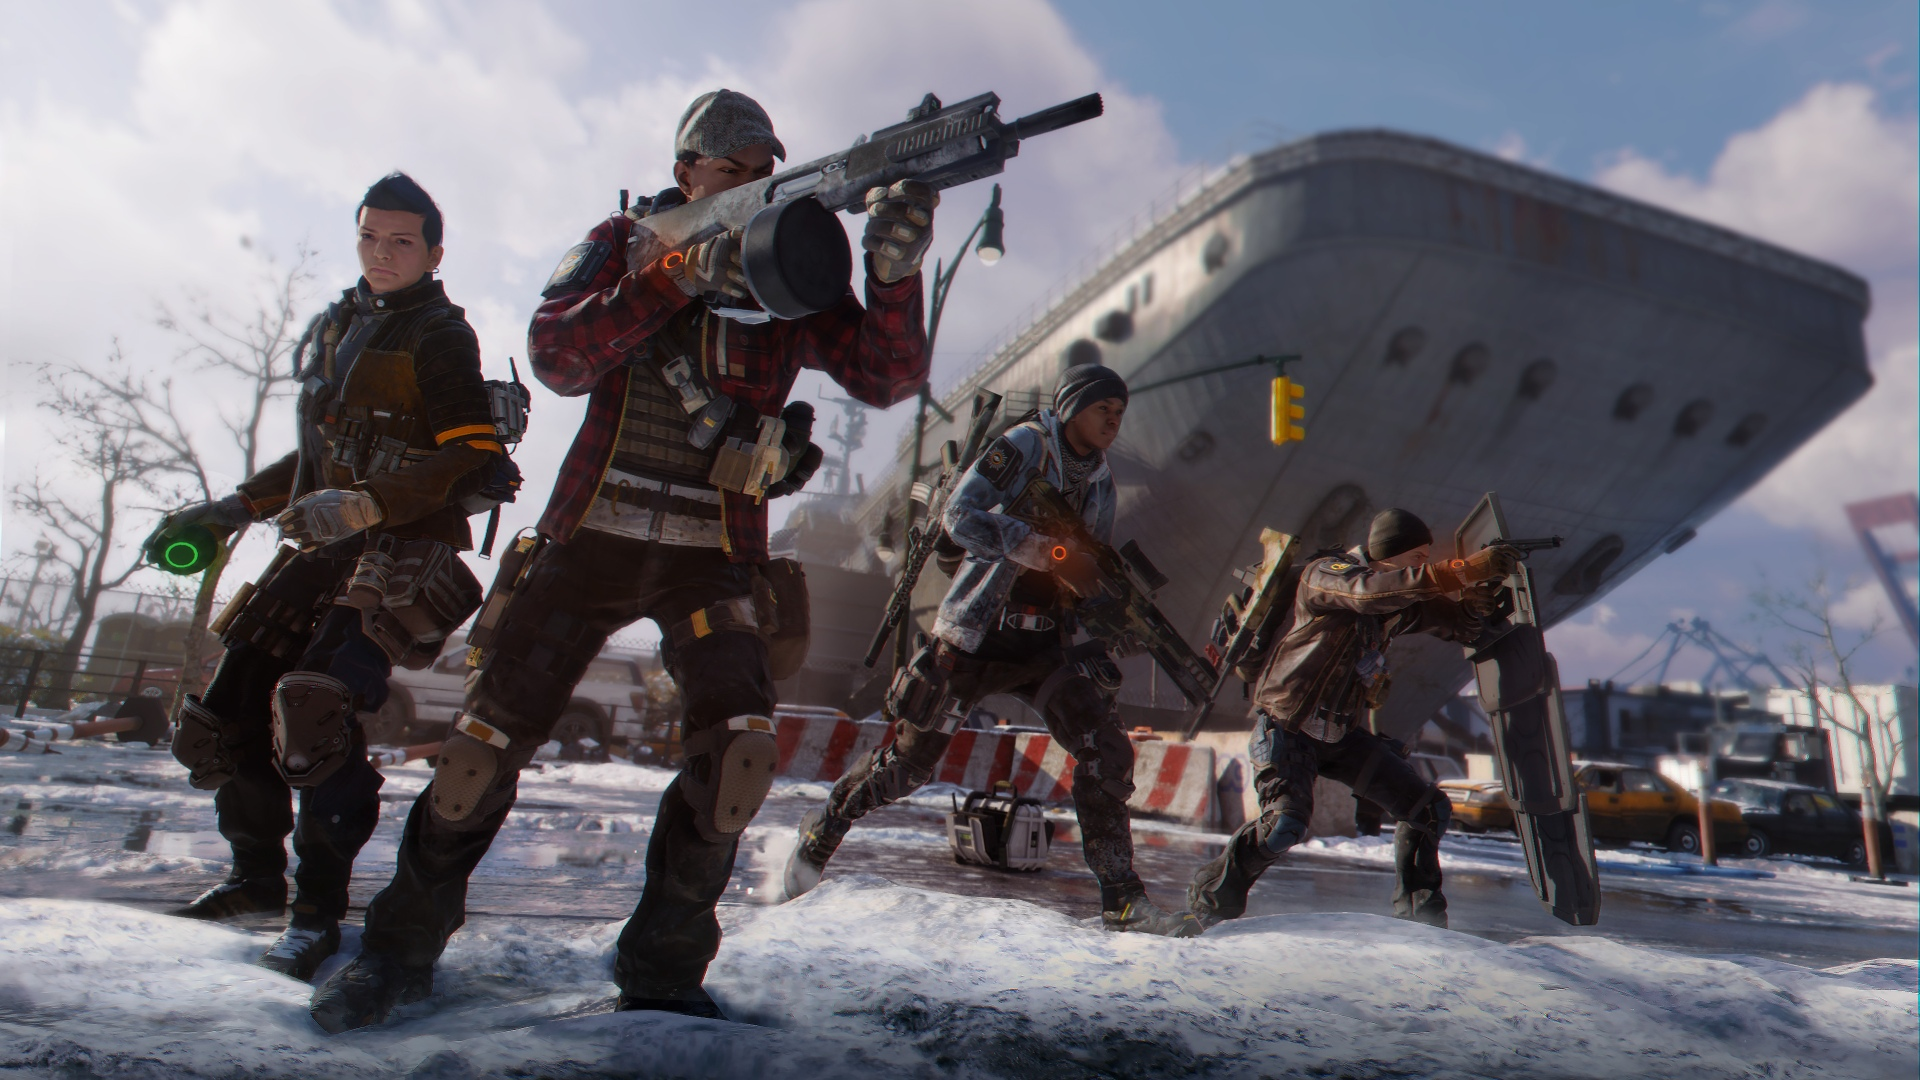 The Division Mobile is coming – but what exactly is it?